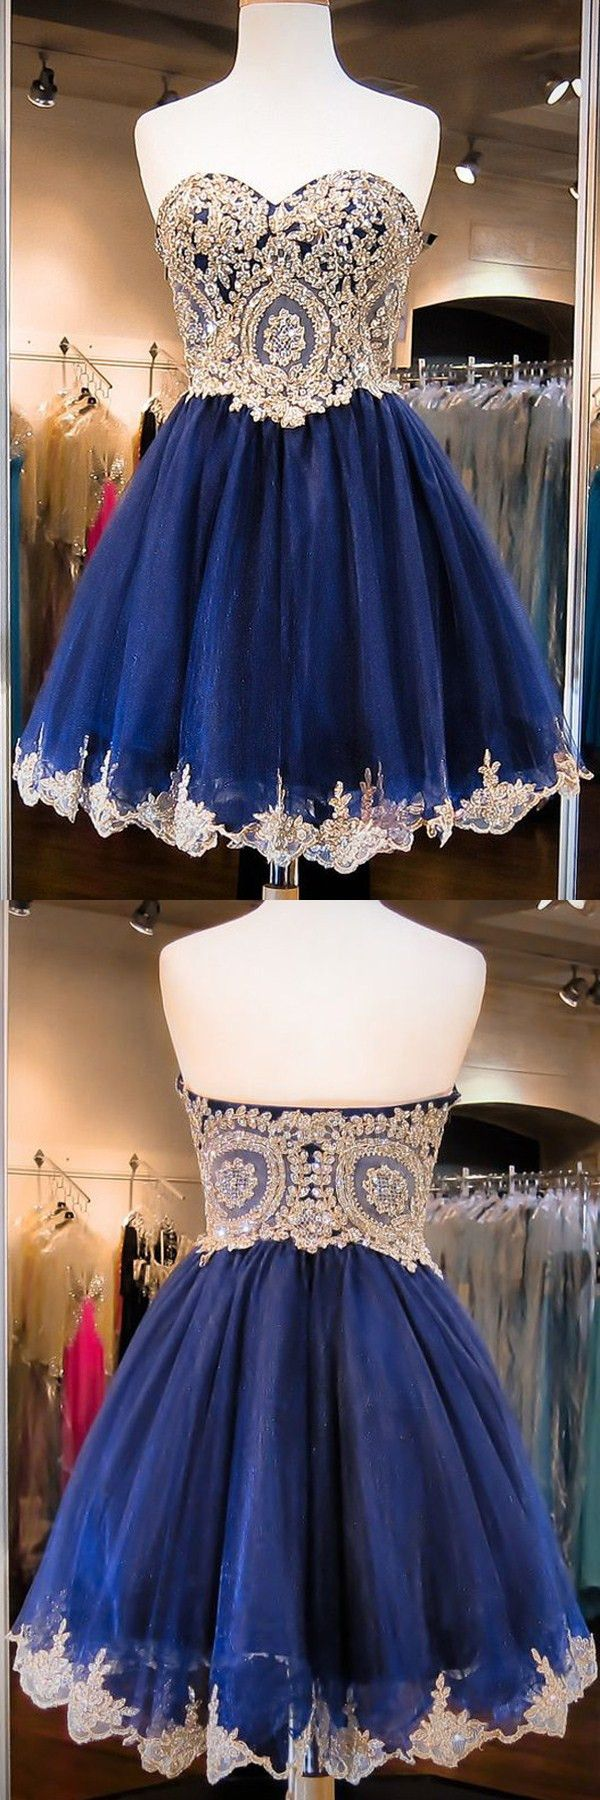 2016 homecoming dresses,homecoming dresses,sweetheart homecoming dresses,sparkle homecoming dresses,short prom dresses,cheap short prom dresses for teens,teen fashion